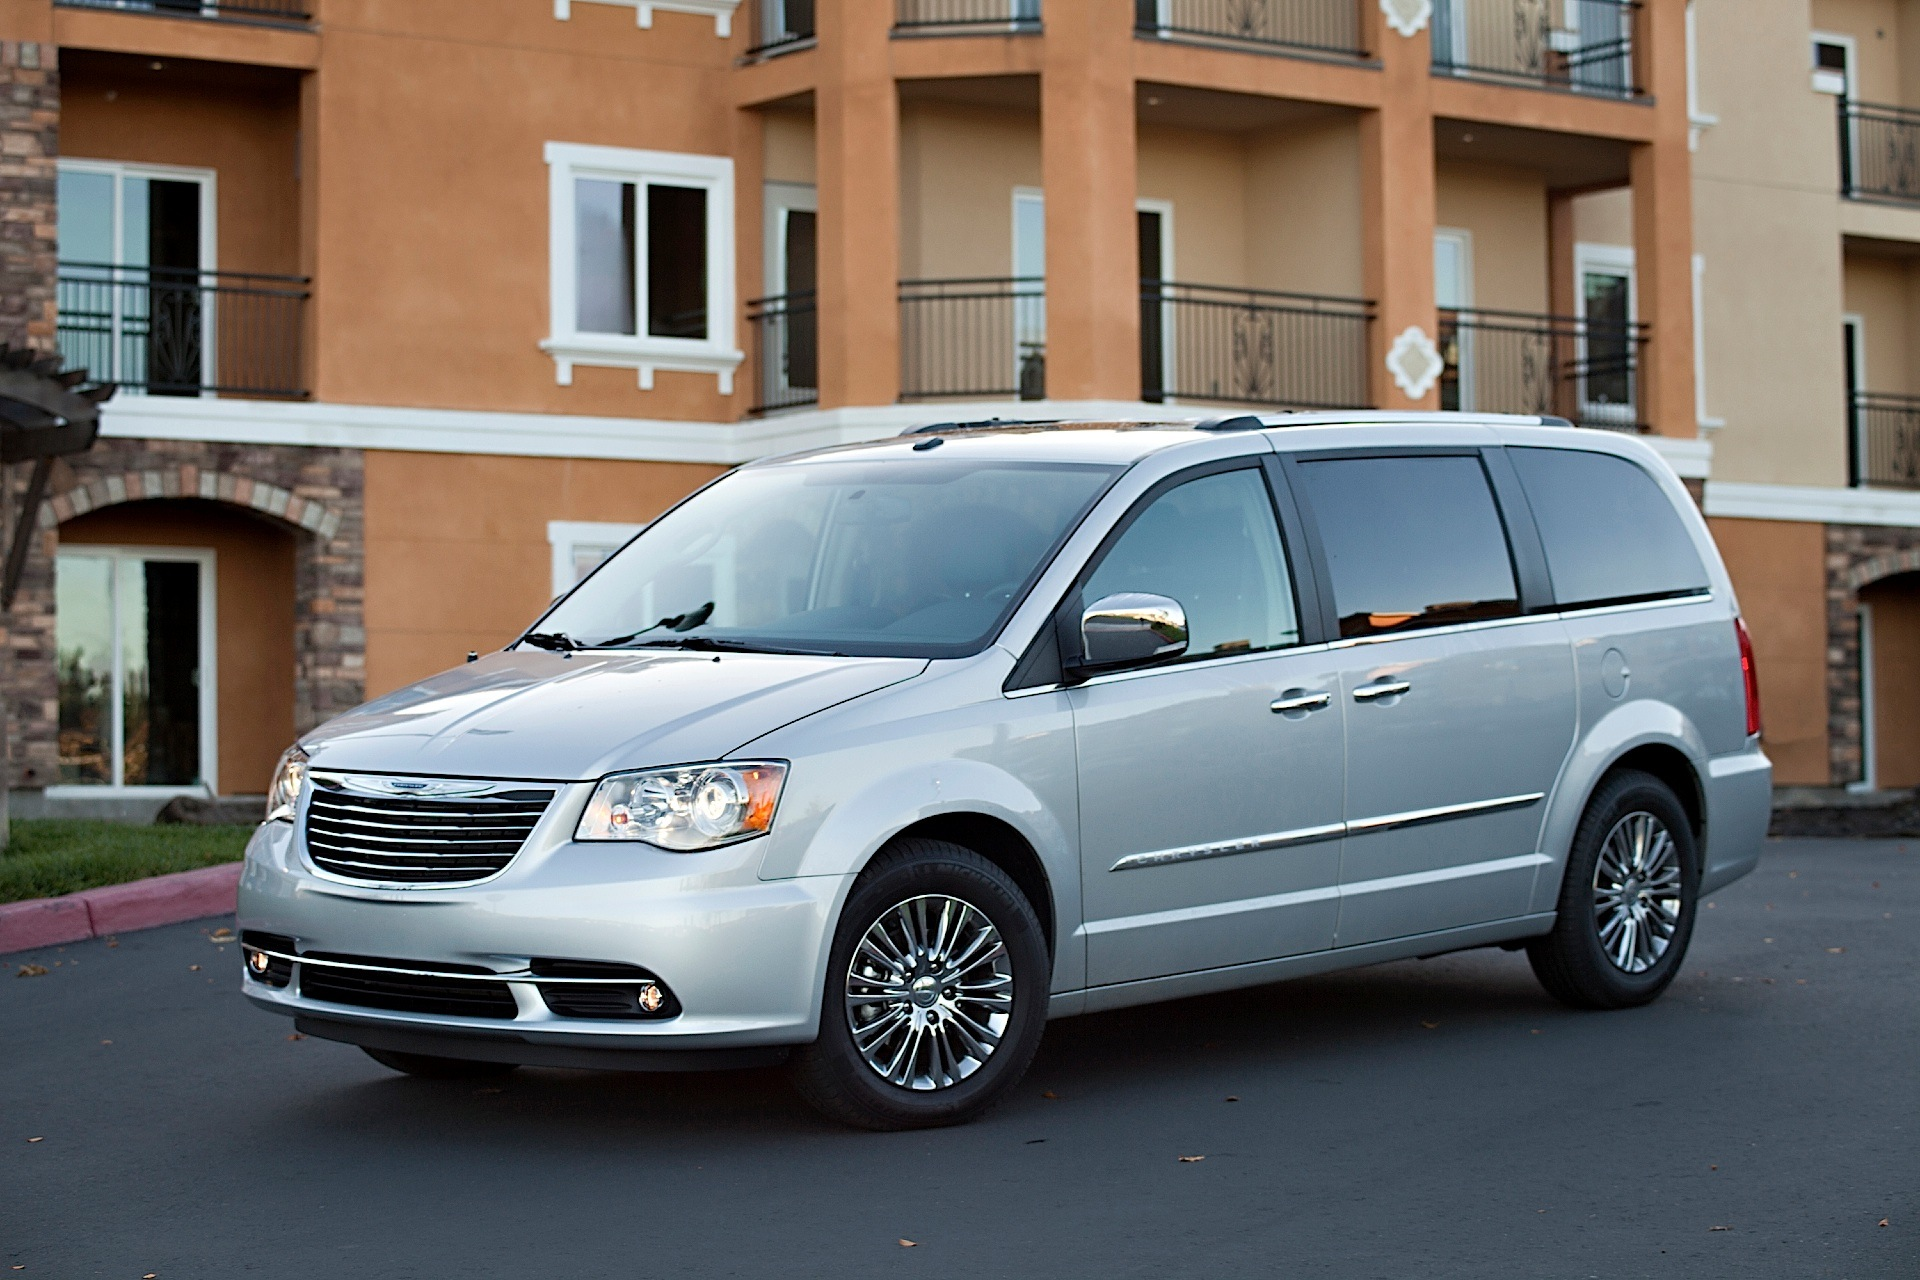 CHRYSLER Town & Country specs - 2007, 2008, 2009, 2010, 2011, 2012, 2013, 2014, 2015, 2016 ...